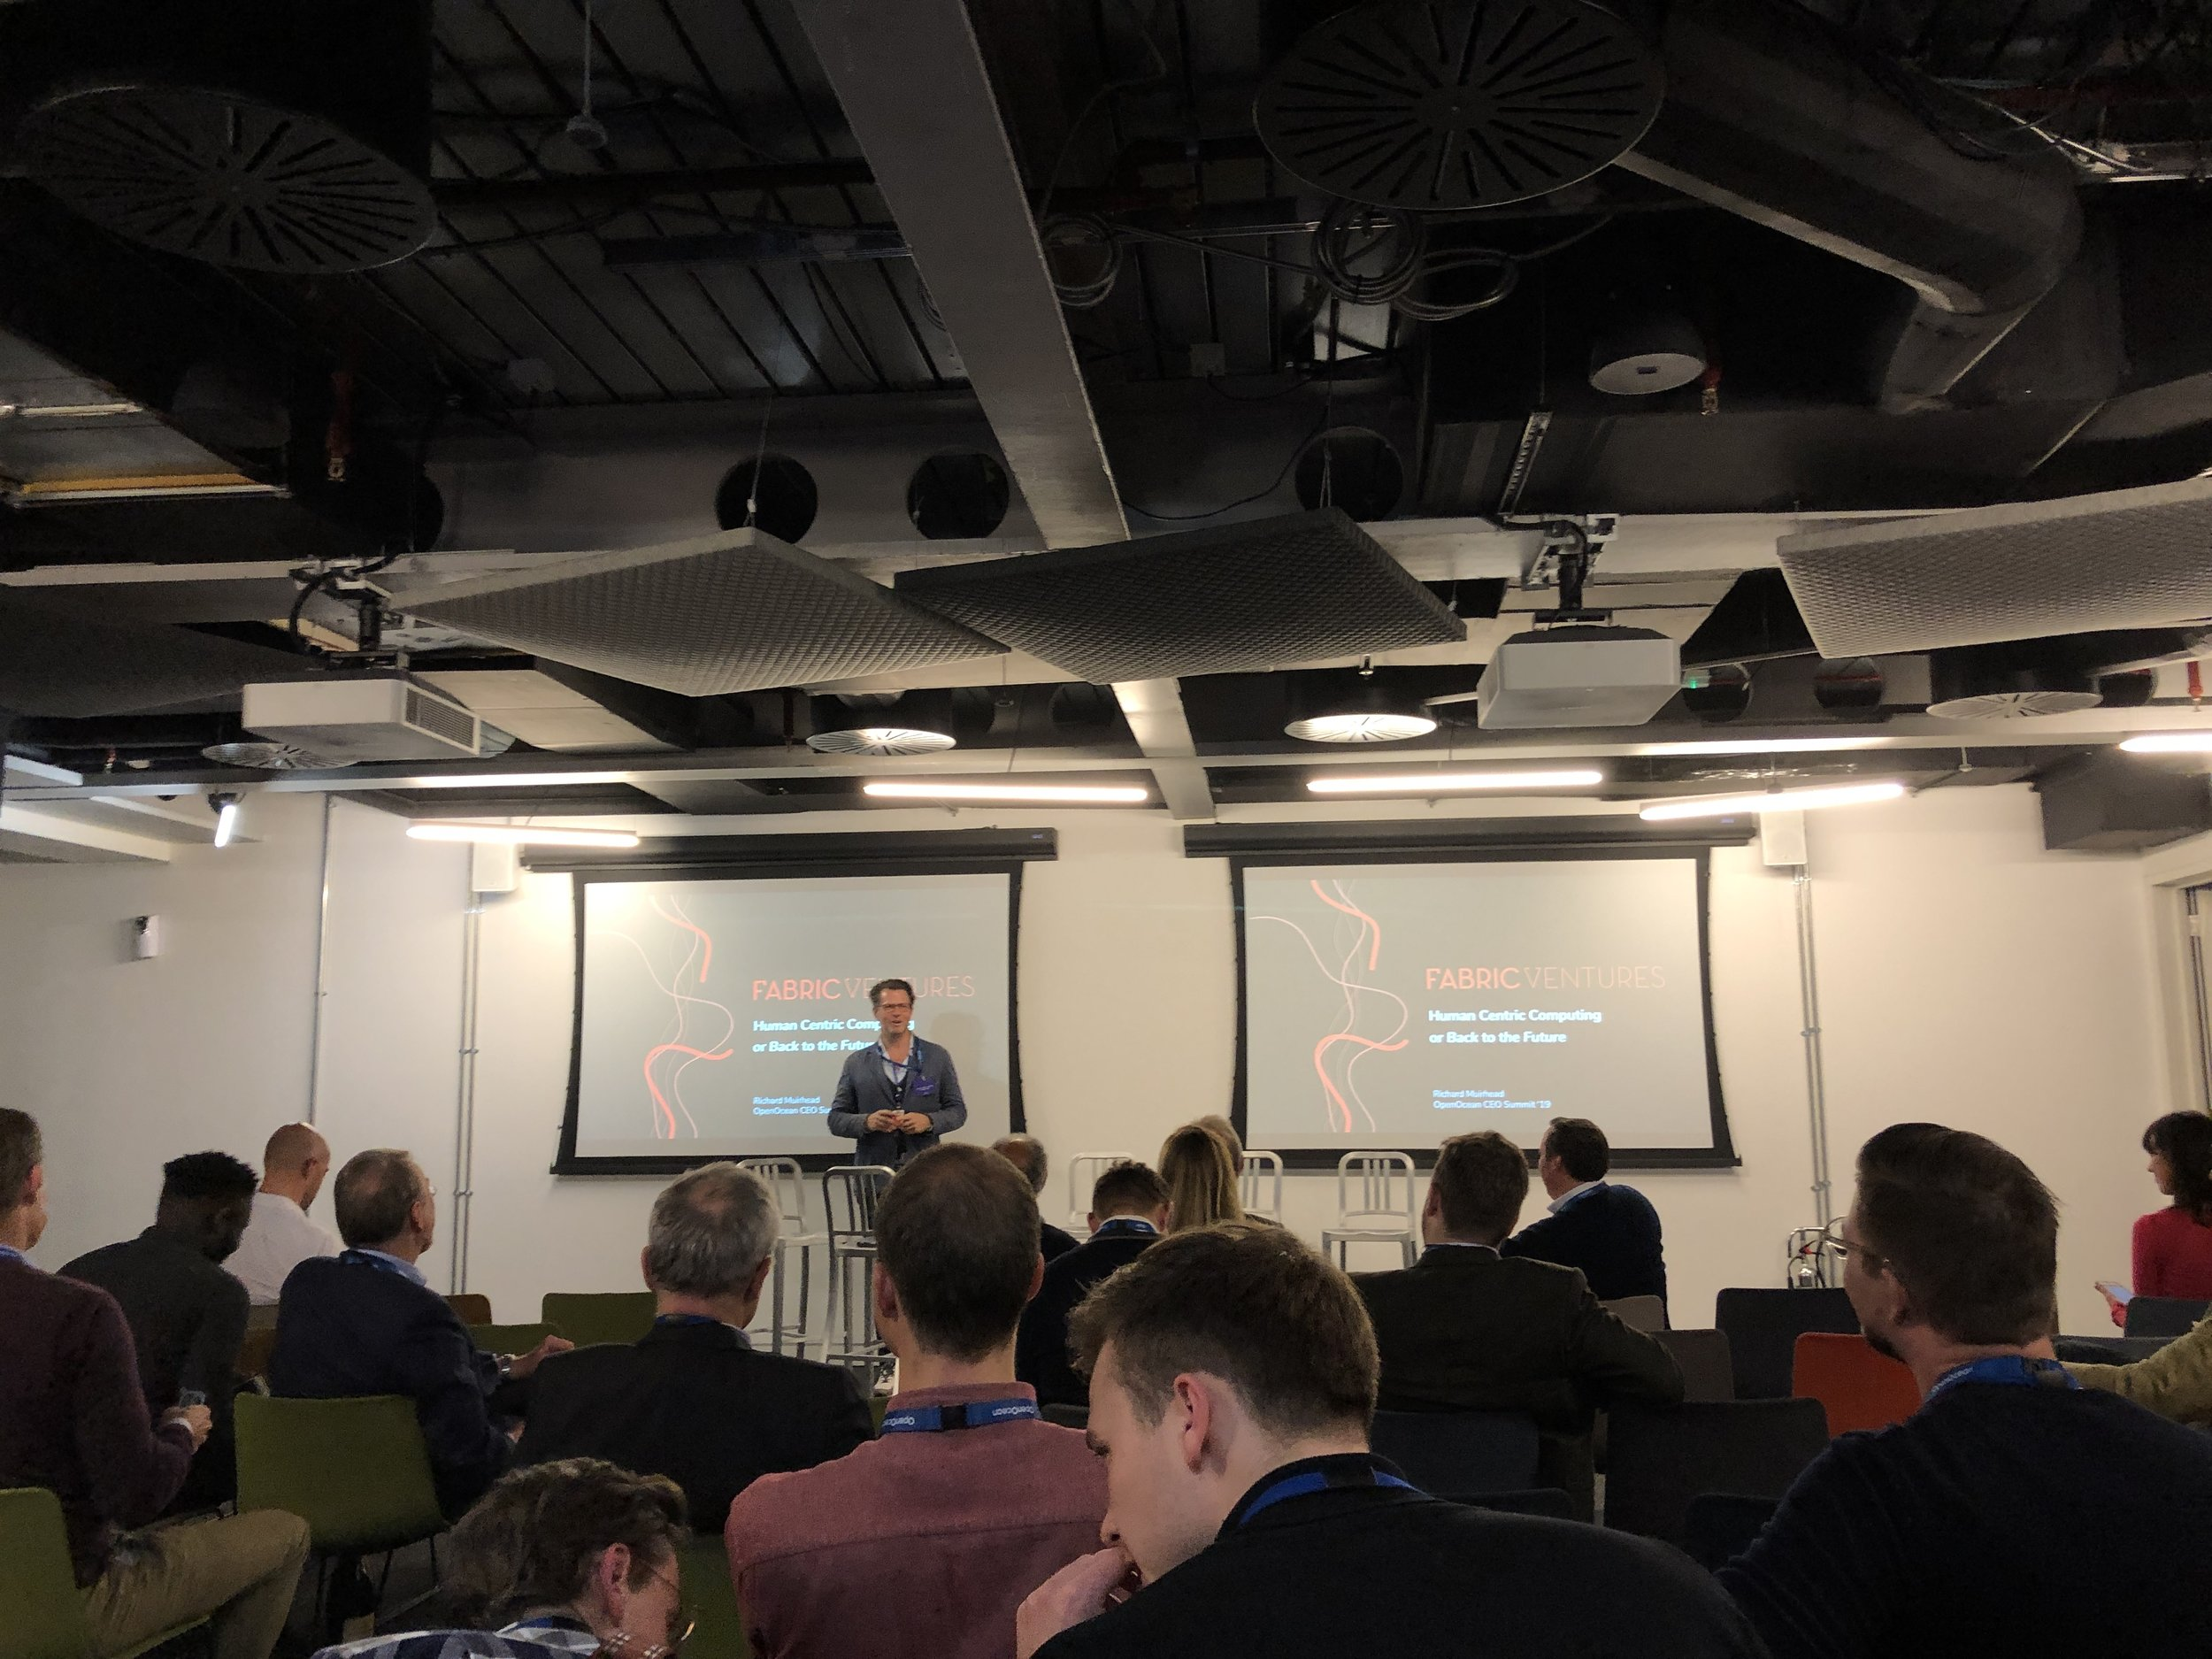 OpenOcean CEO Summit - - London | 9th April Richard presented our vision for Web 3.0 in his Back To The Future talk.